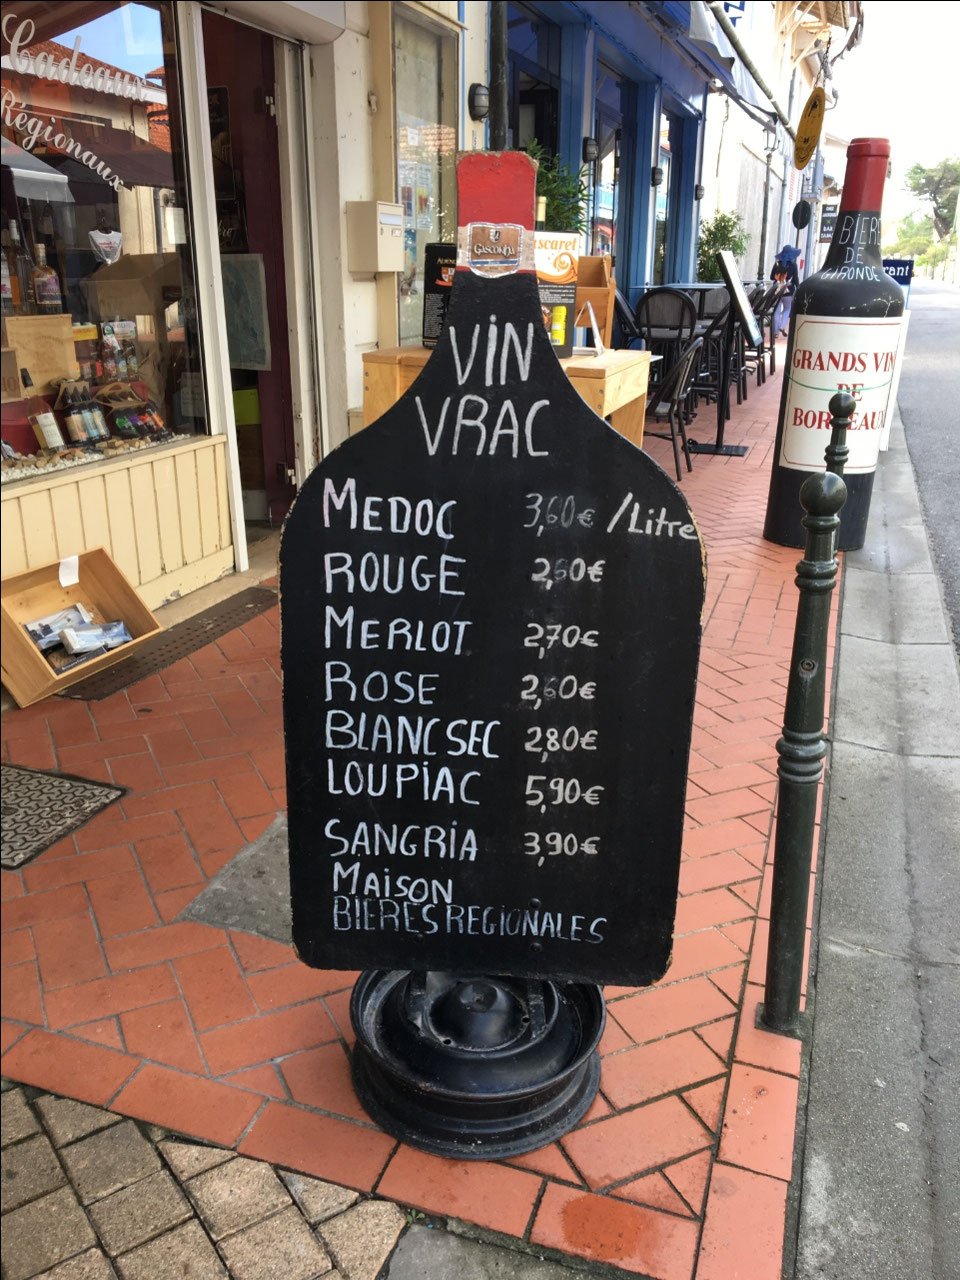 Good prices for wine